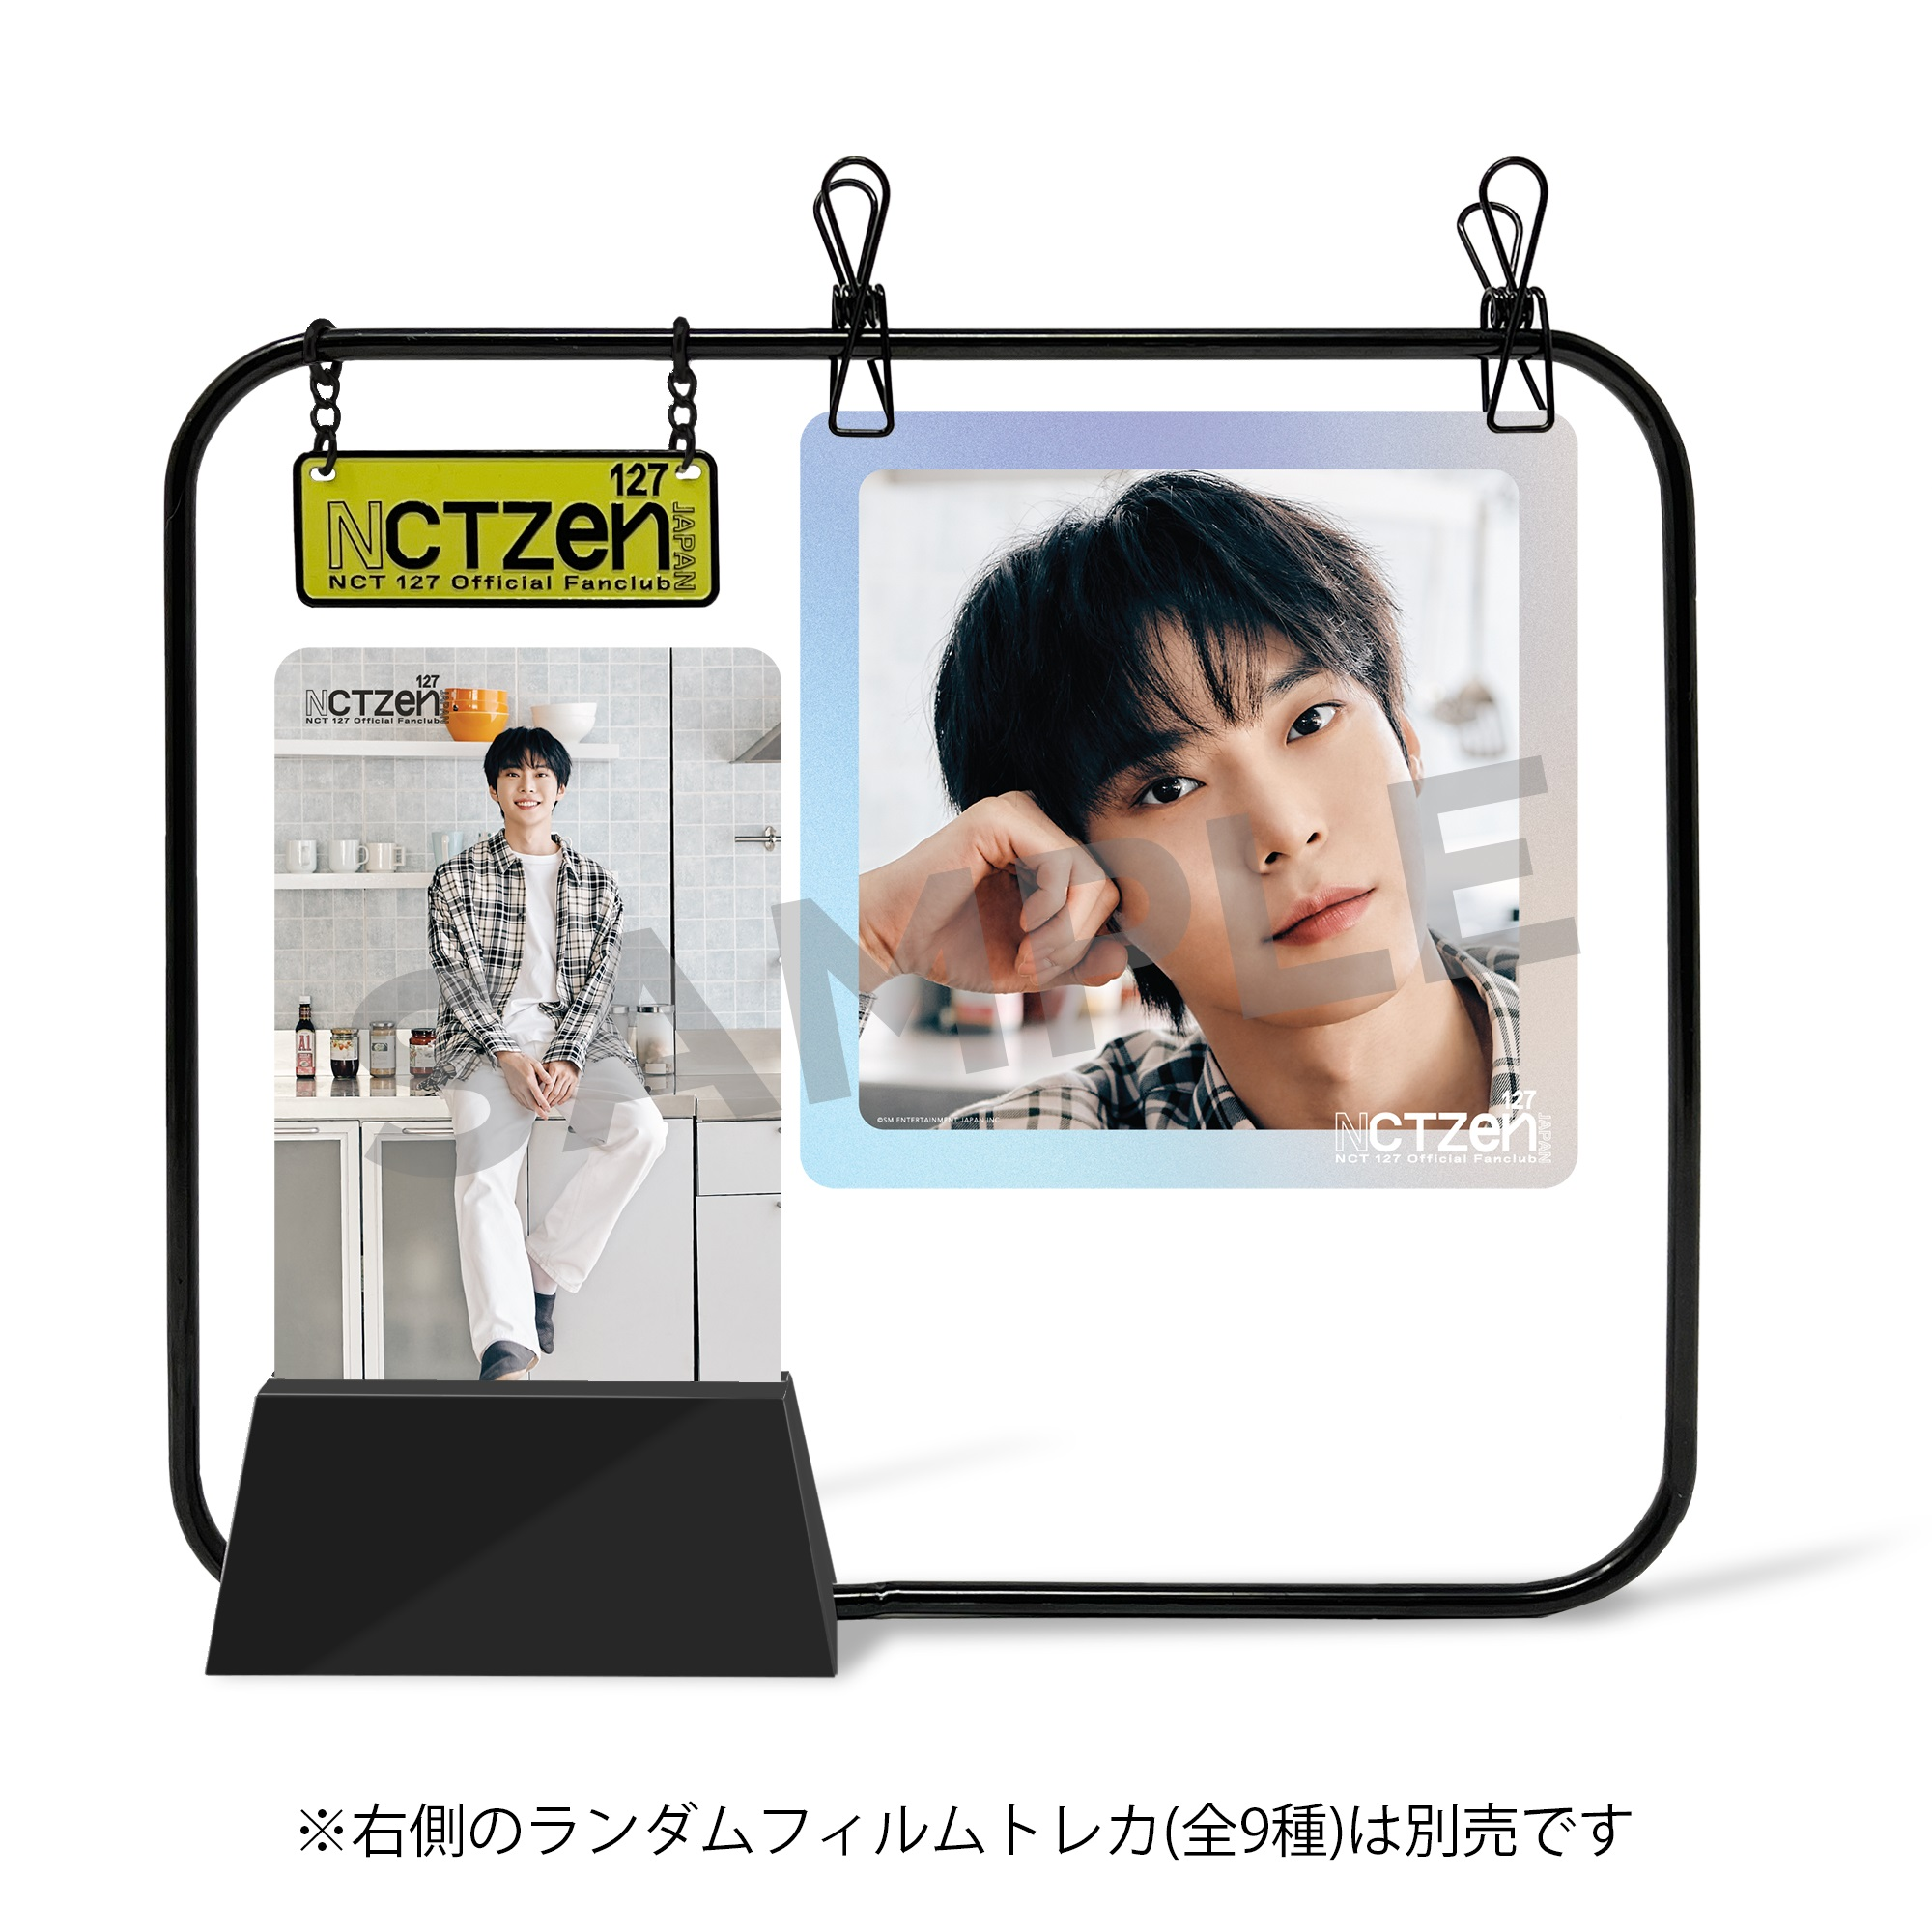 【NCT 127】『NCT 127 OFFICIAL BOOK Vol.4』グッズを、メンバー別に詳しく紹介!_6_3